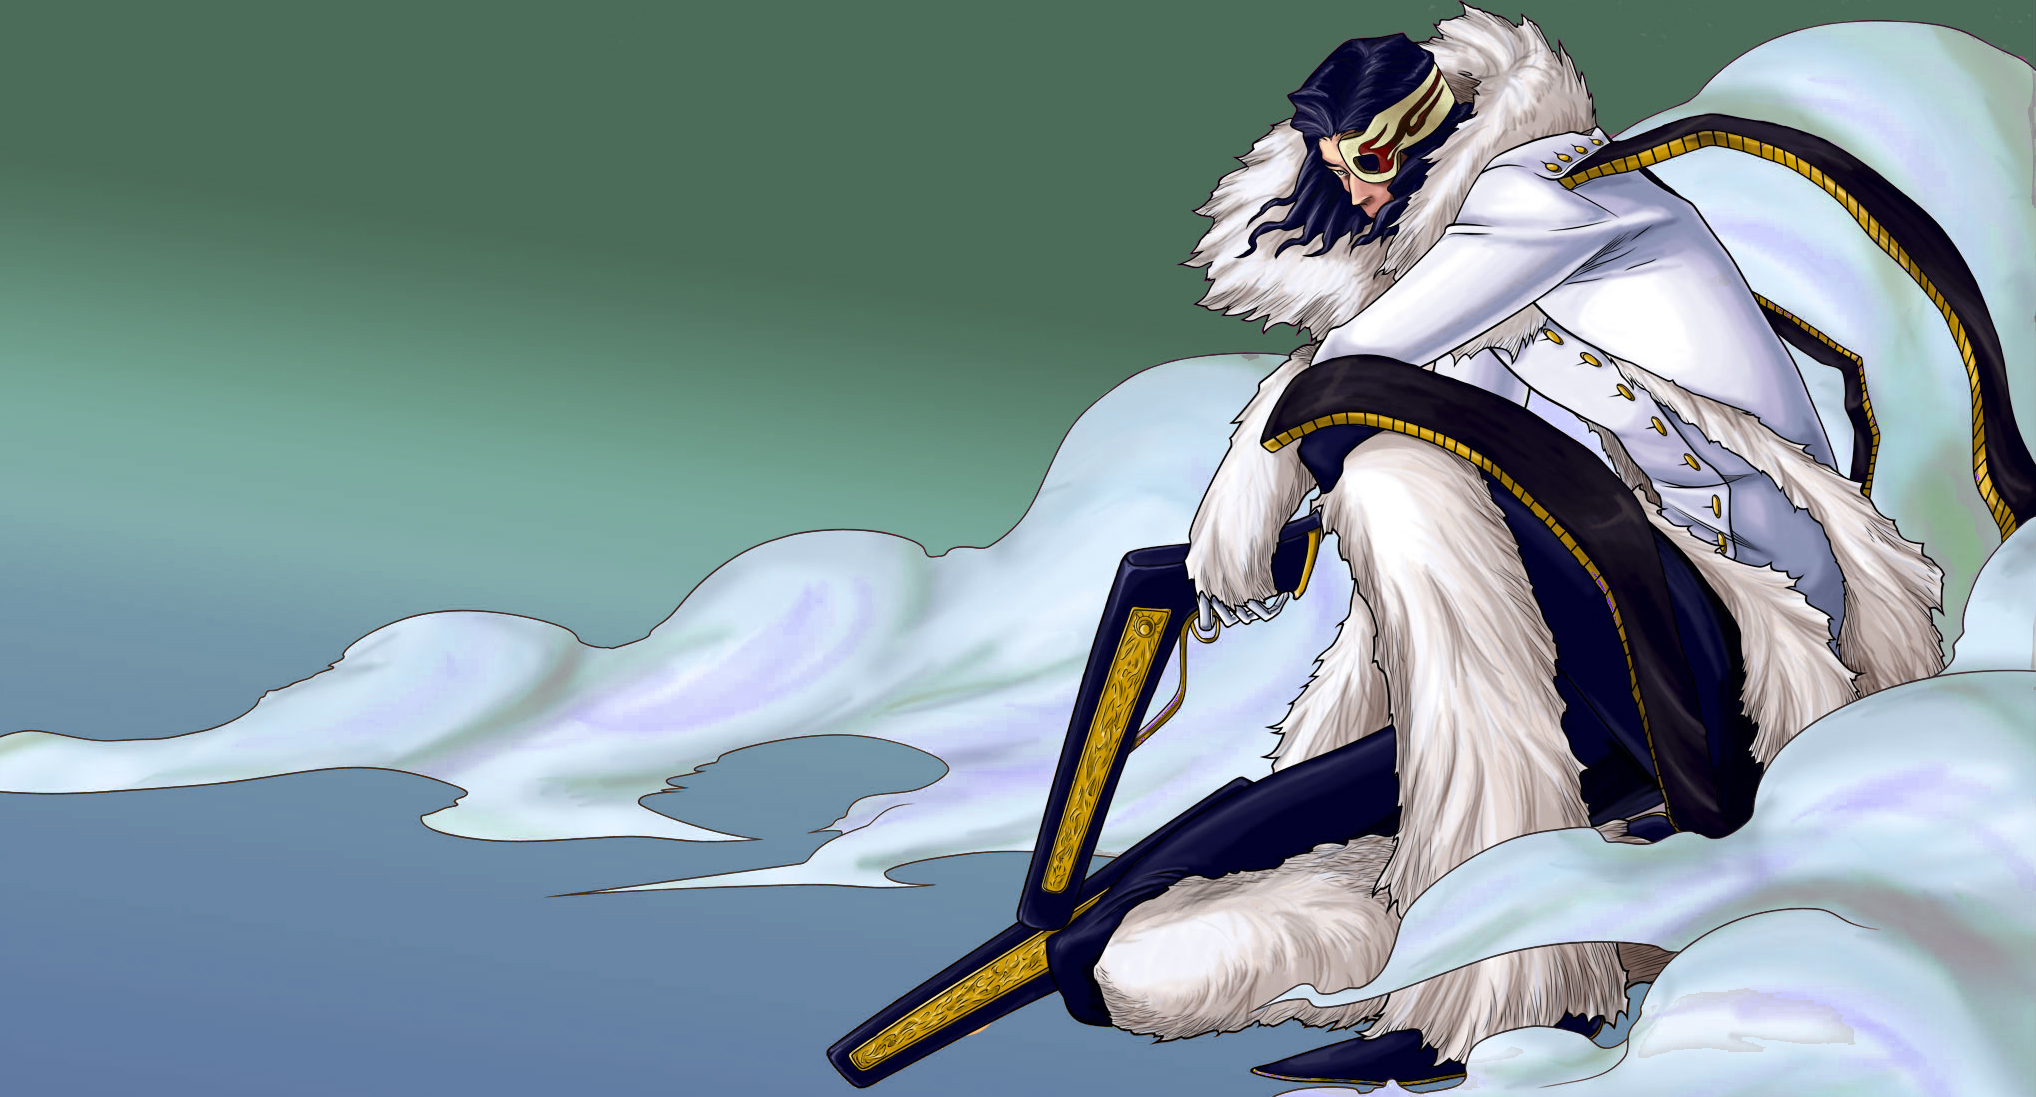 bleach full hd wallpaper and background image 2036x1097